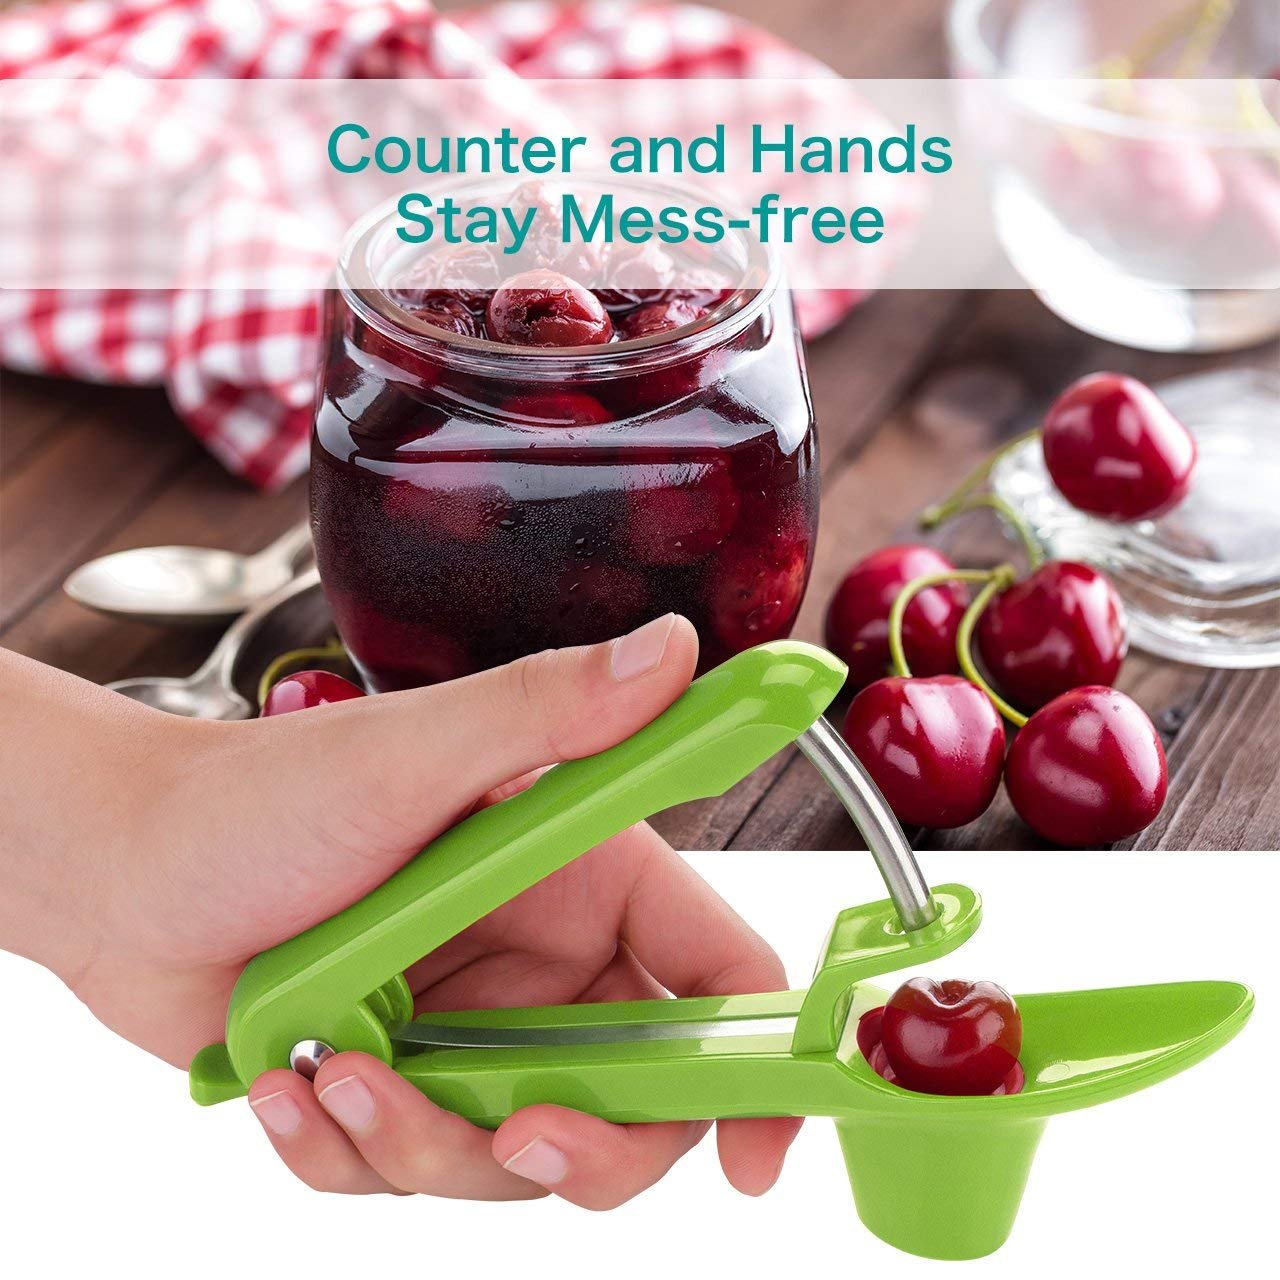 IPEC THERAPY Cherry Pitter,Portable Cherry Pitter Remover Cherry Pitter Tool Olive Pitter Tool Cherry Stoner Cherry Seed Remover by IPEC THERAPY (Image #3)